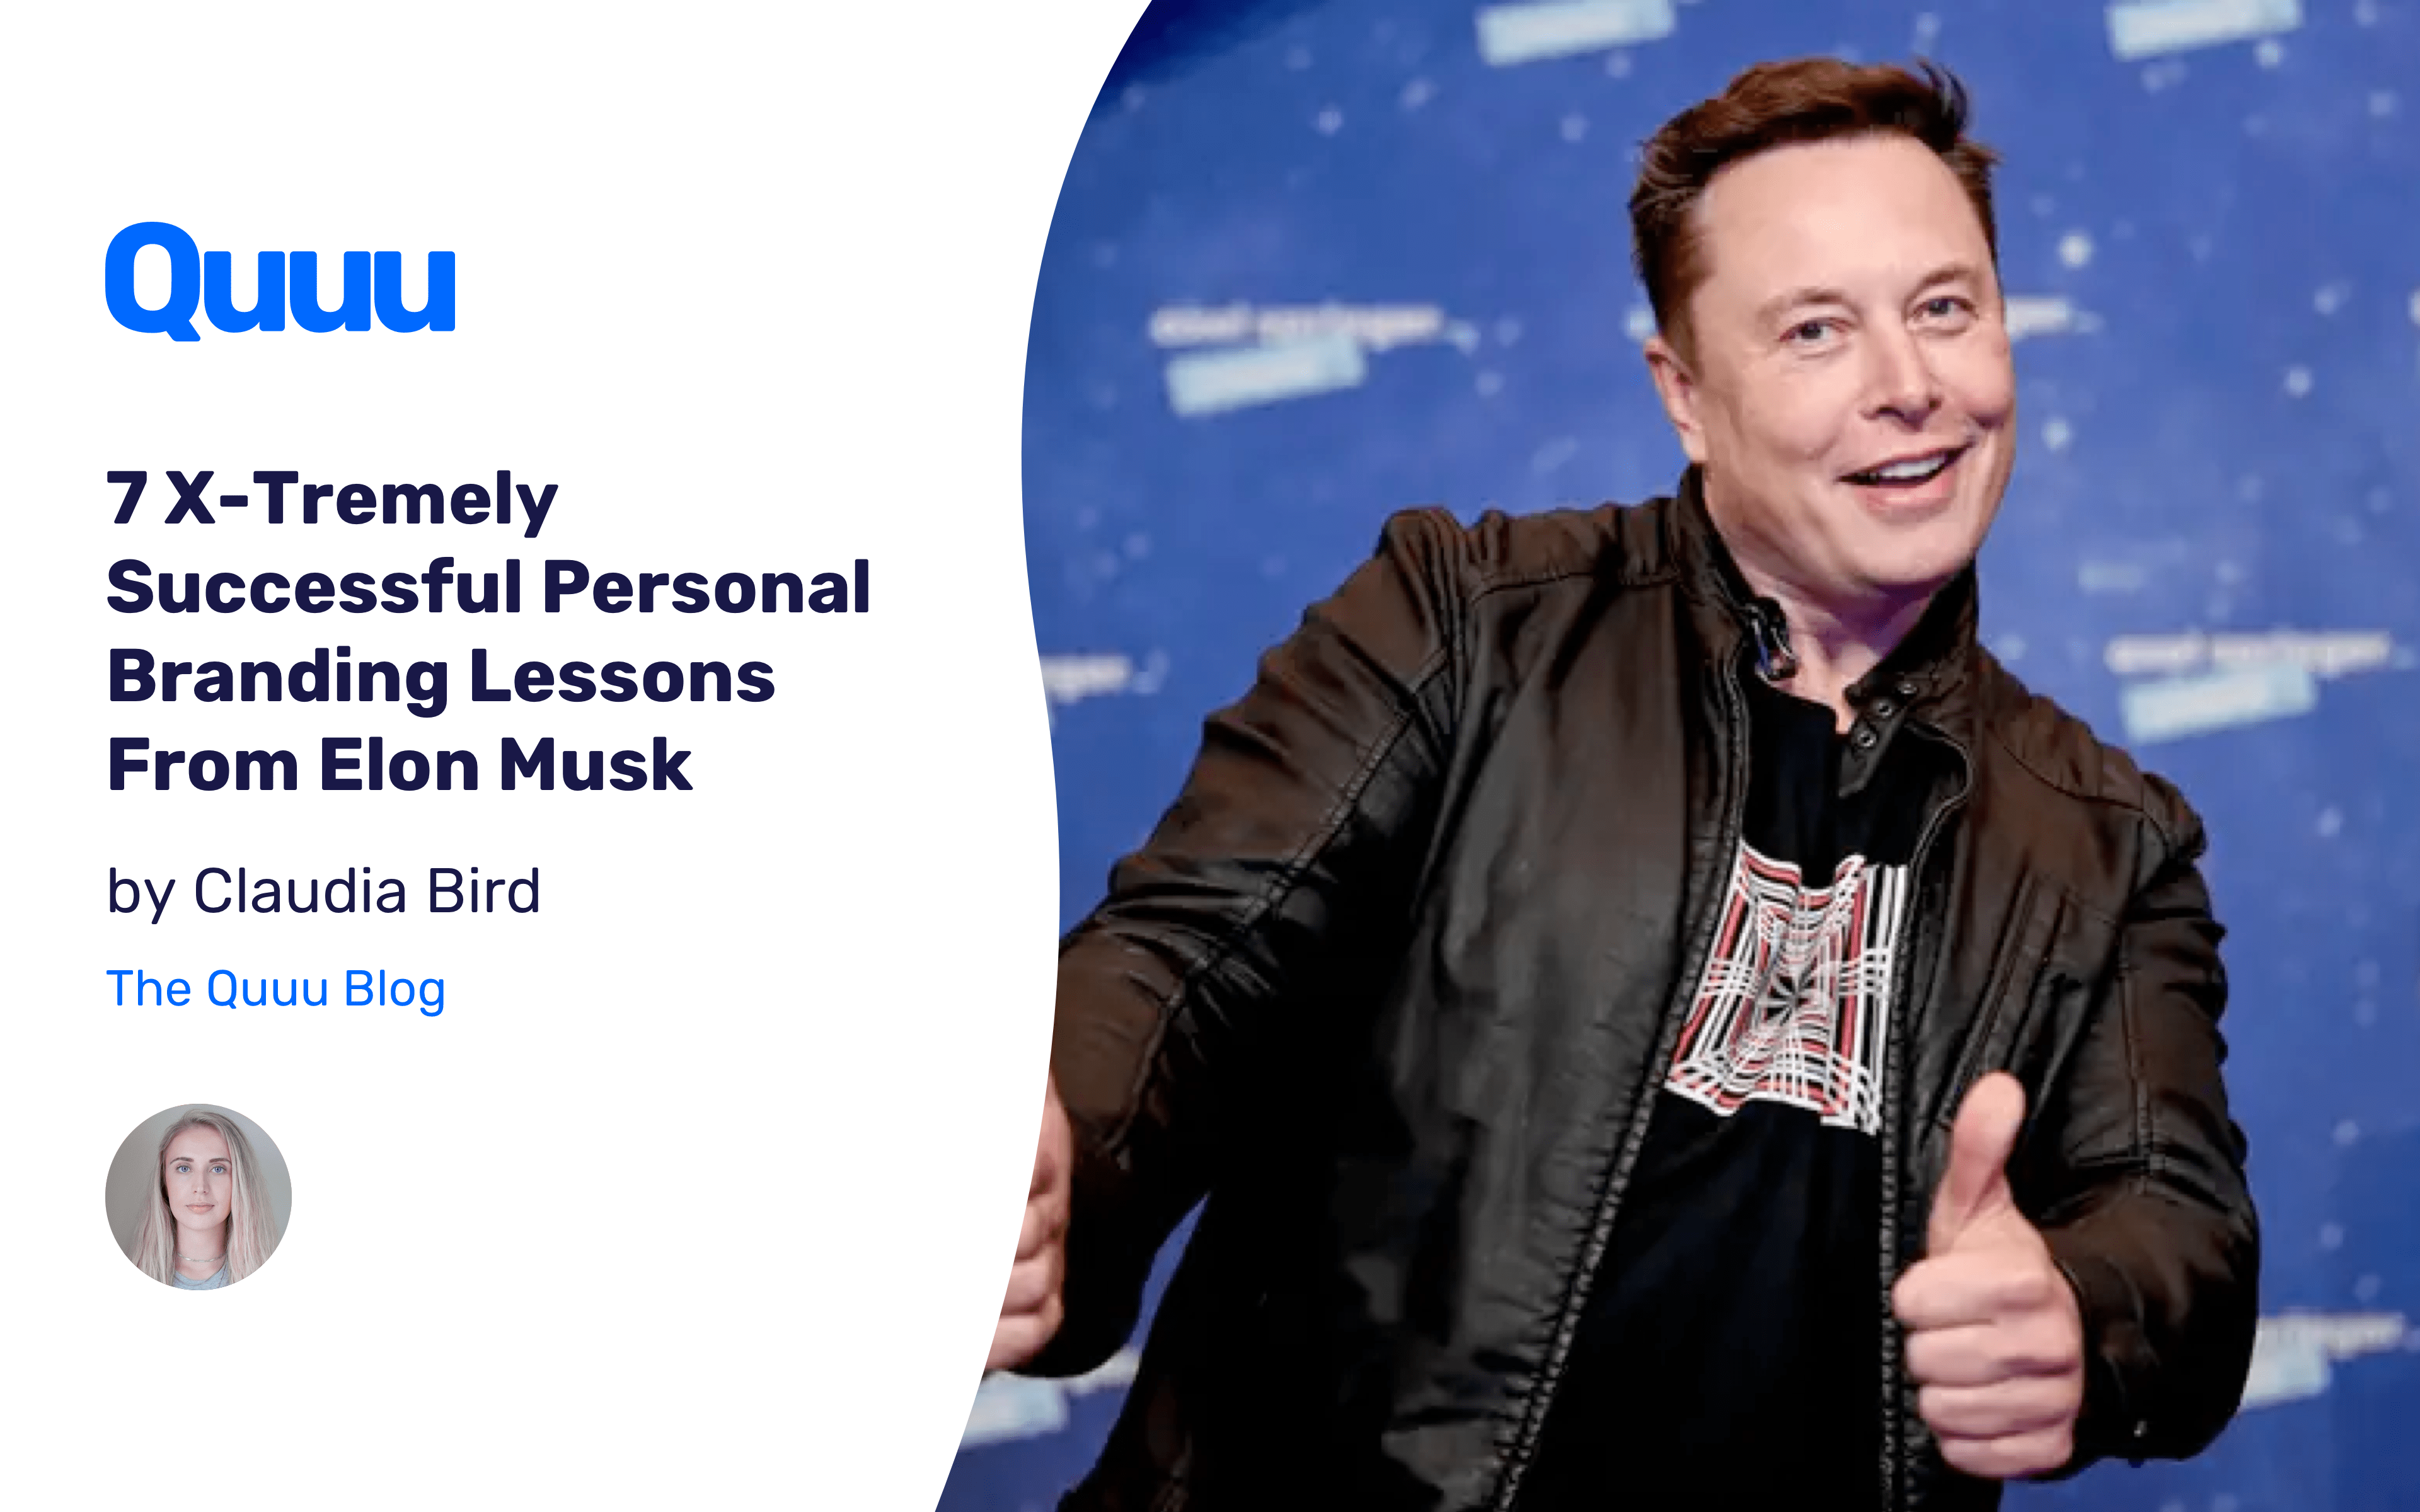 7 X-Tremely Successful Personal Branding Lessons From Elon Musk